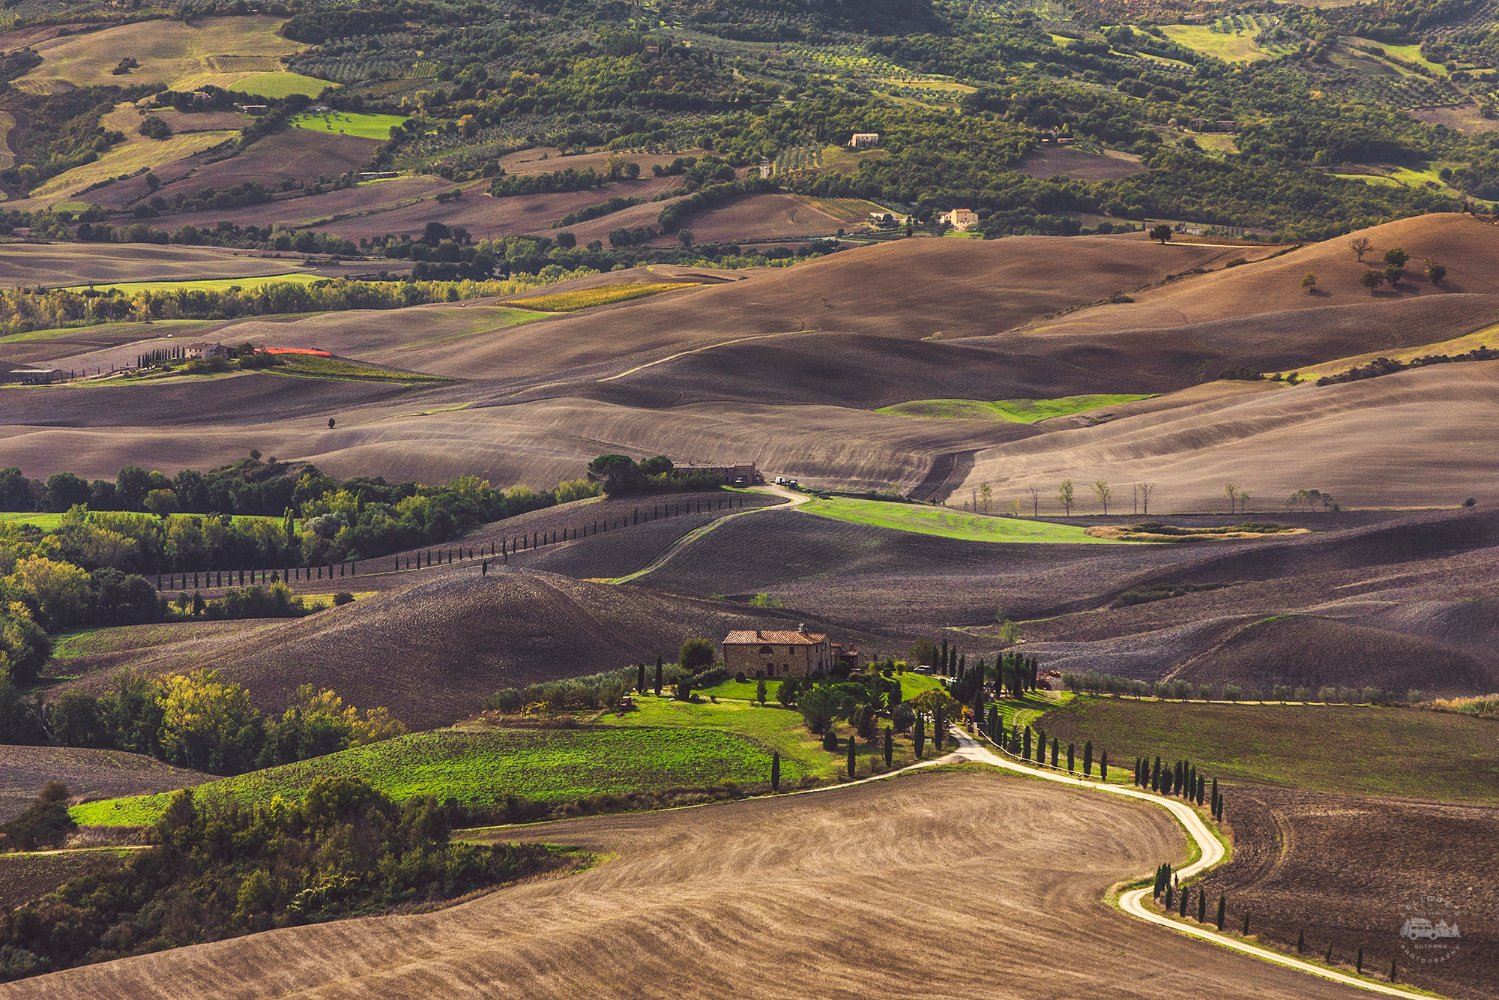 Hills-of-Val-DOrcia-Real-Tuscany-Photos-Italy_wp7_18698.jpg